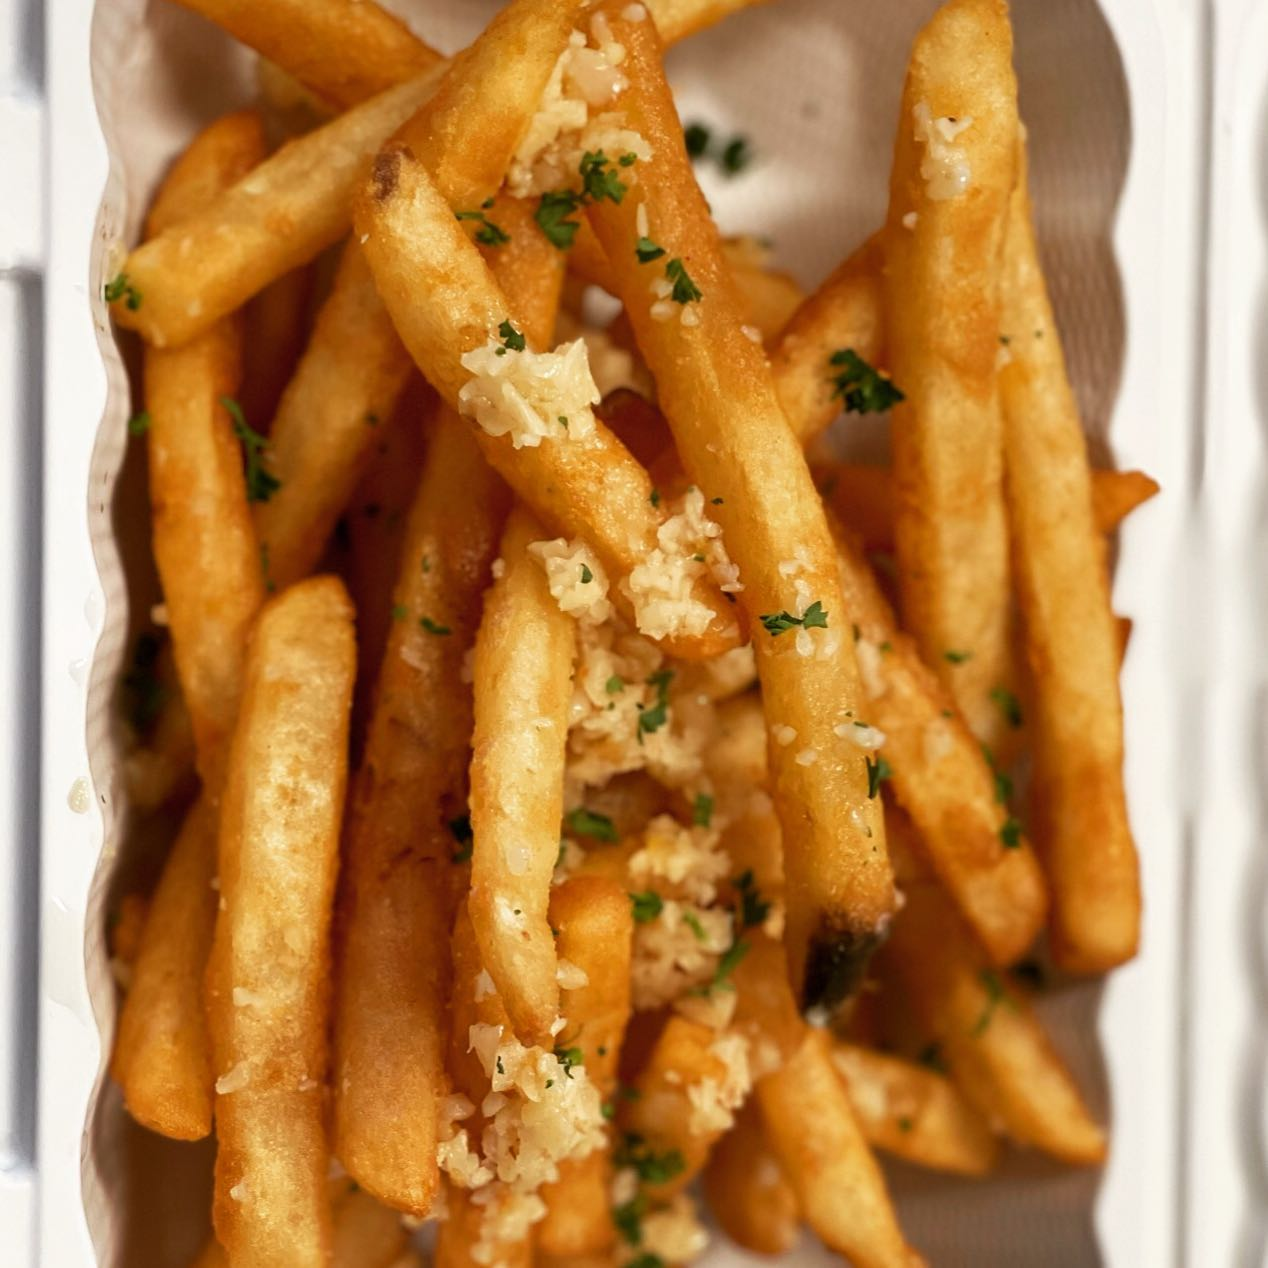 french fries topped with garnish